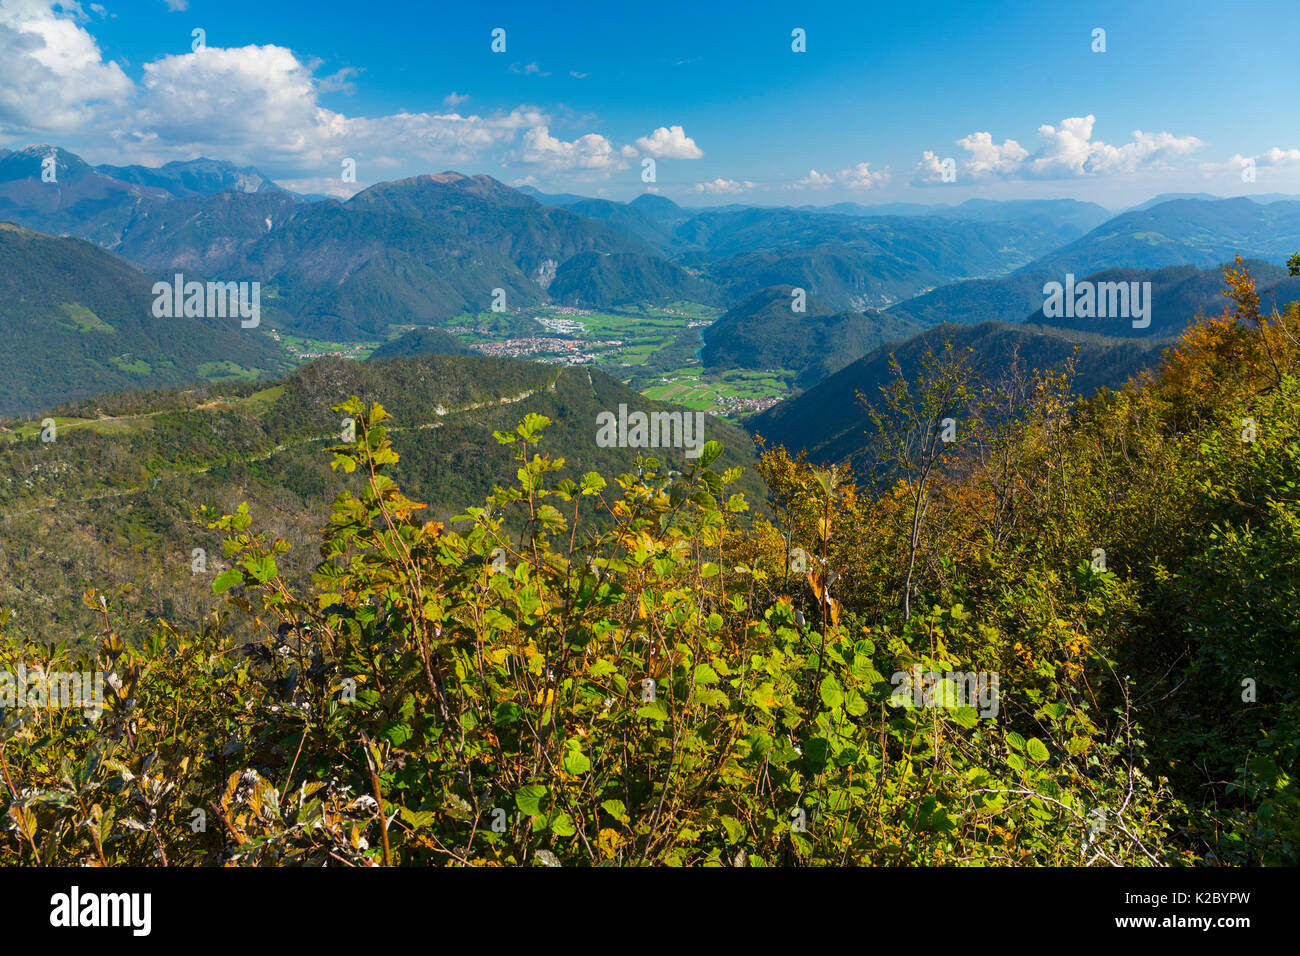 View from the The Walk of Peace, hiking route dedicated to World War I casualties.  Soca Valley, Julian Alps, Slovenia, October 2014. - Stock Image